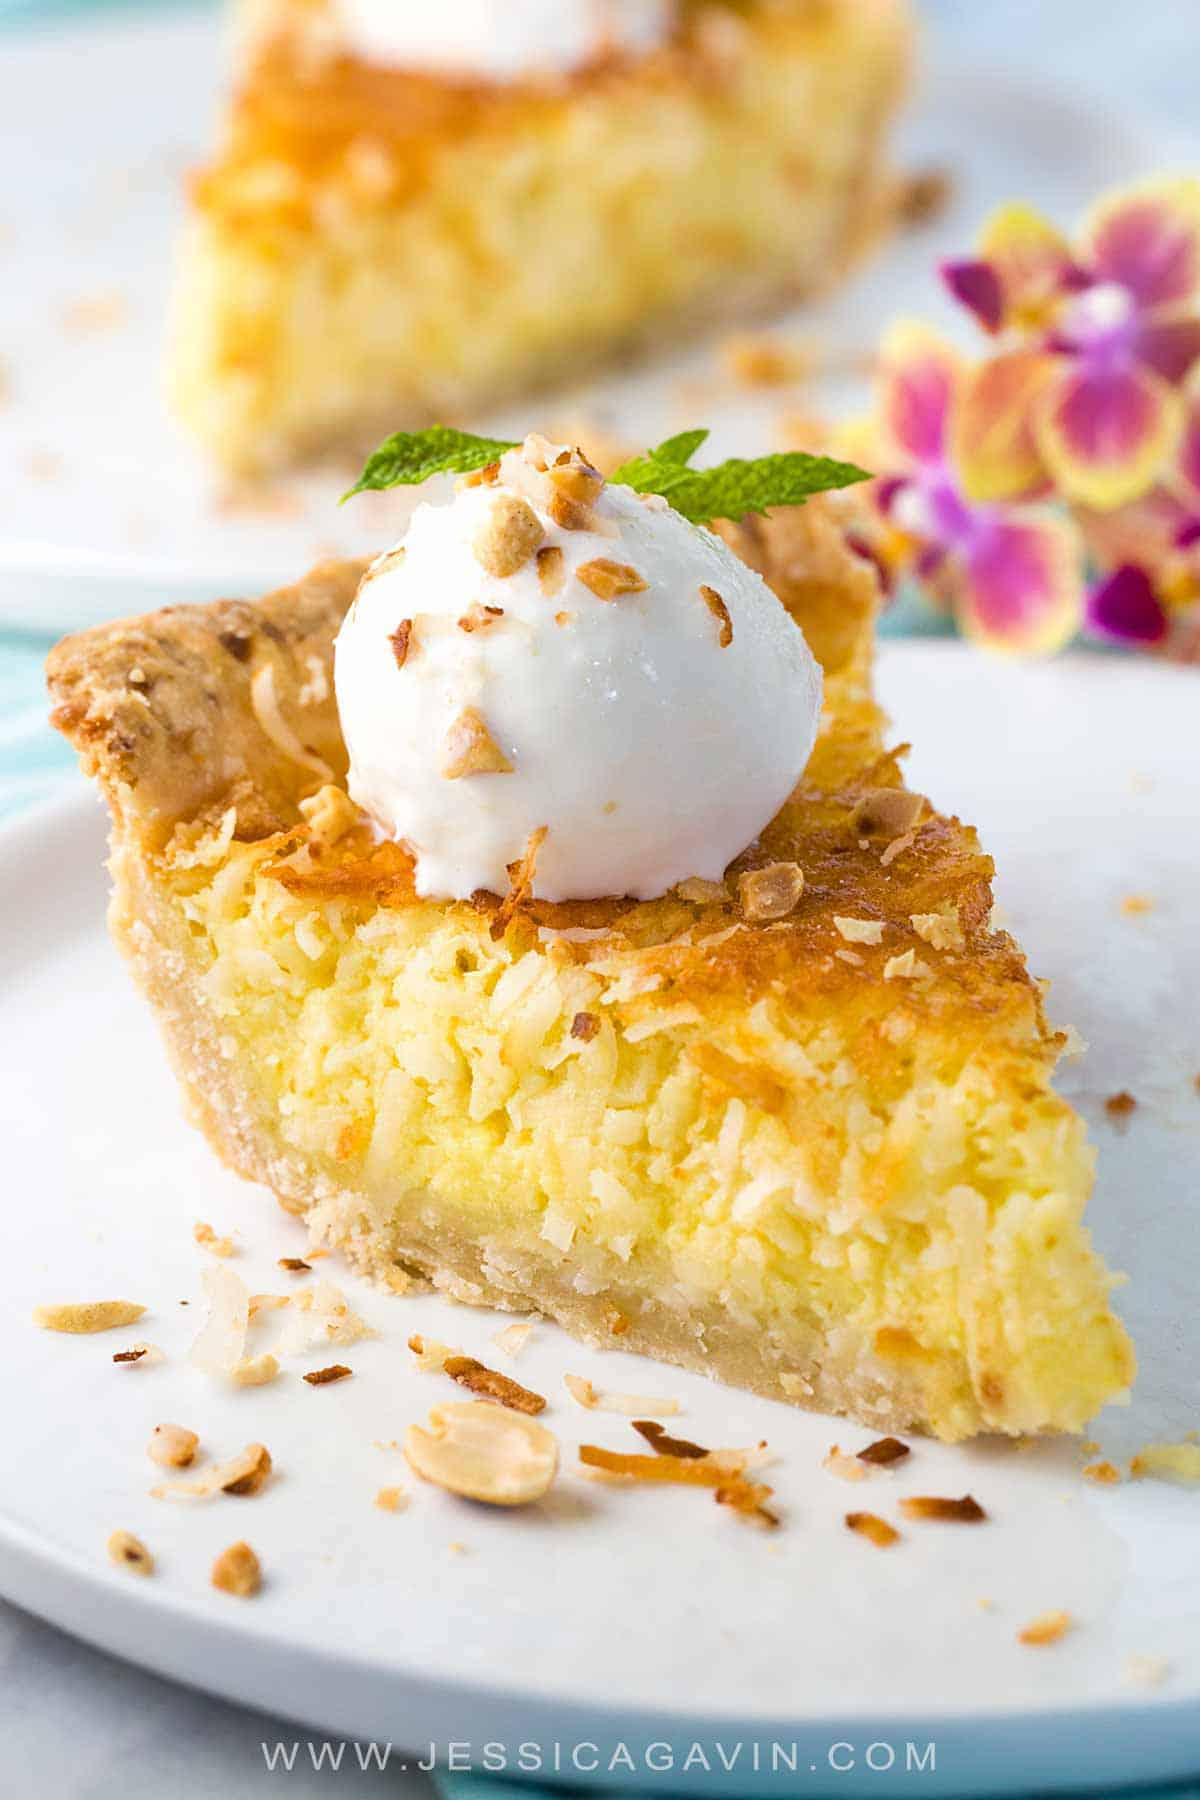 Coconut custard pie recipe with a flaky crust and egg custard filling. This tropical dessert is best served warm with a scoop of vanilla bean ice cream. #custardpie #coconut #vanillabean #dessert #pie